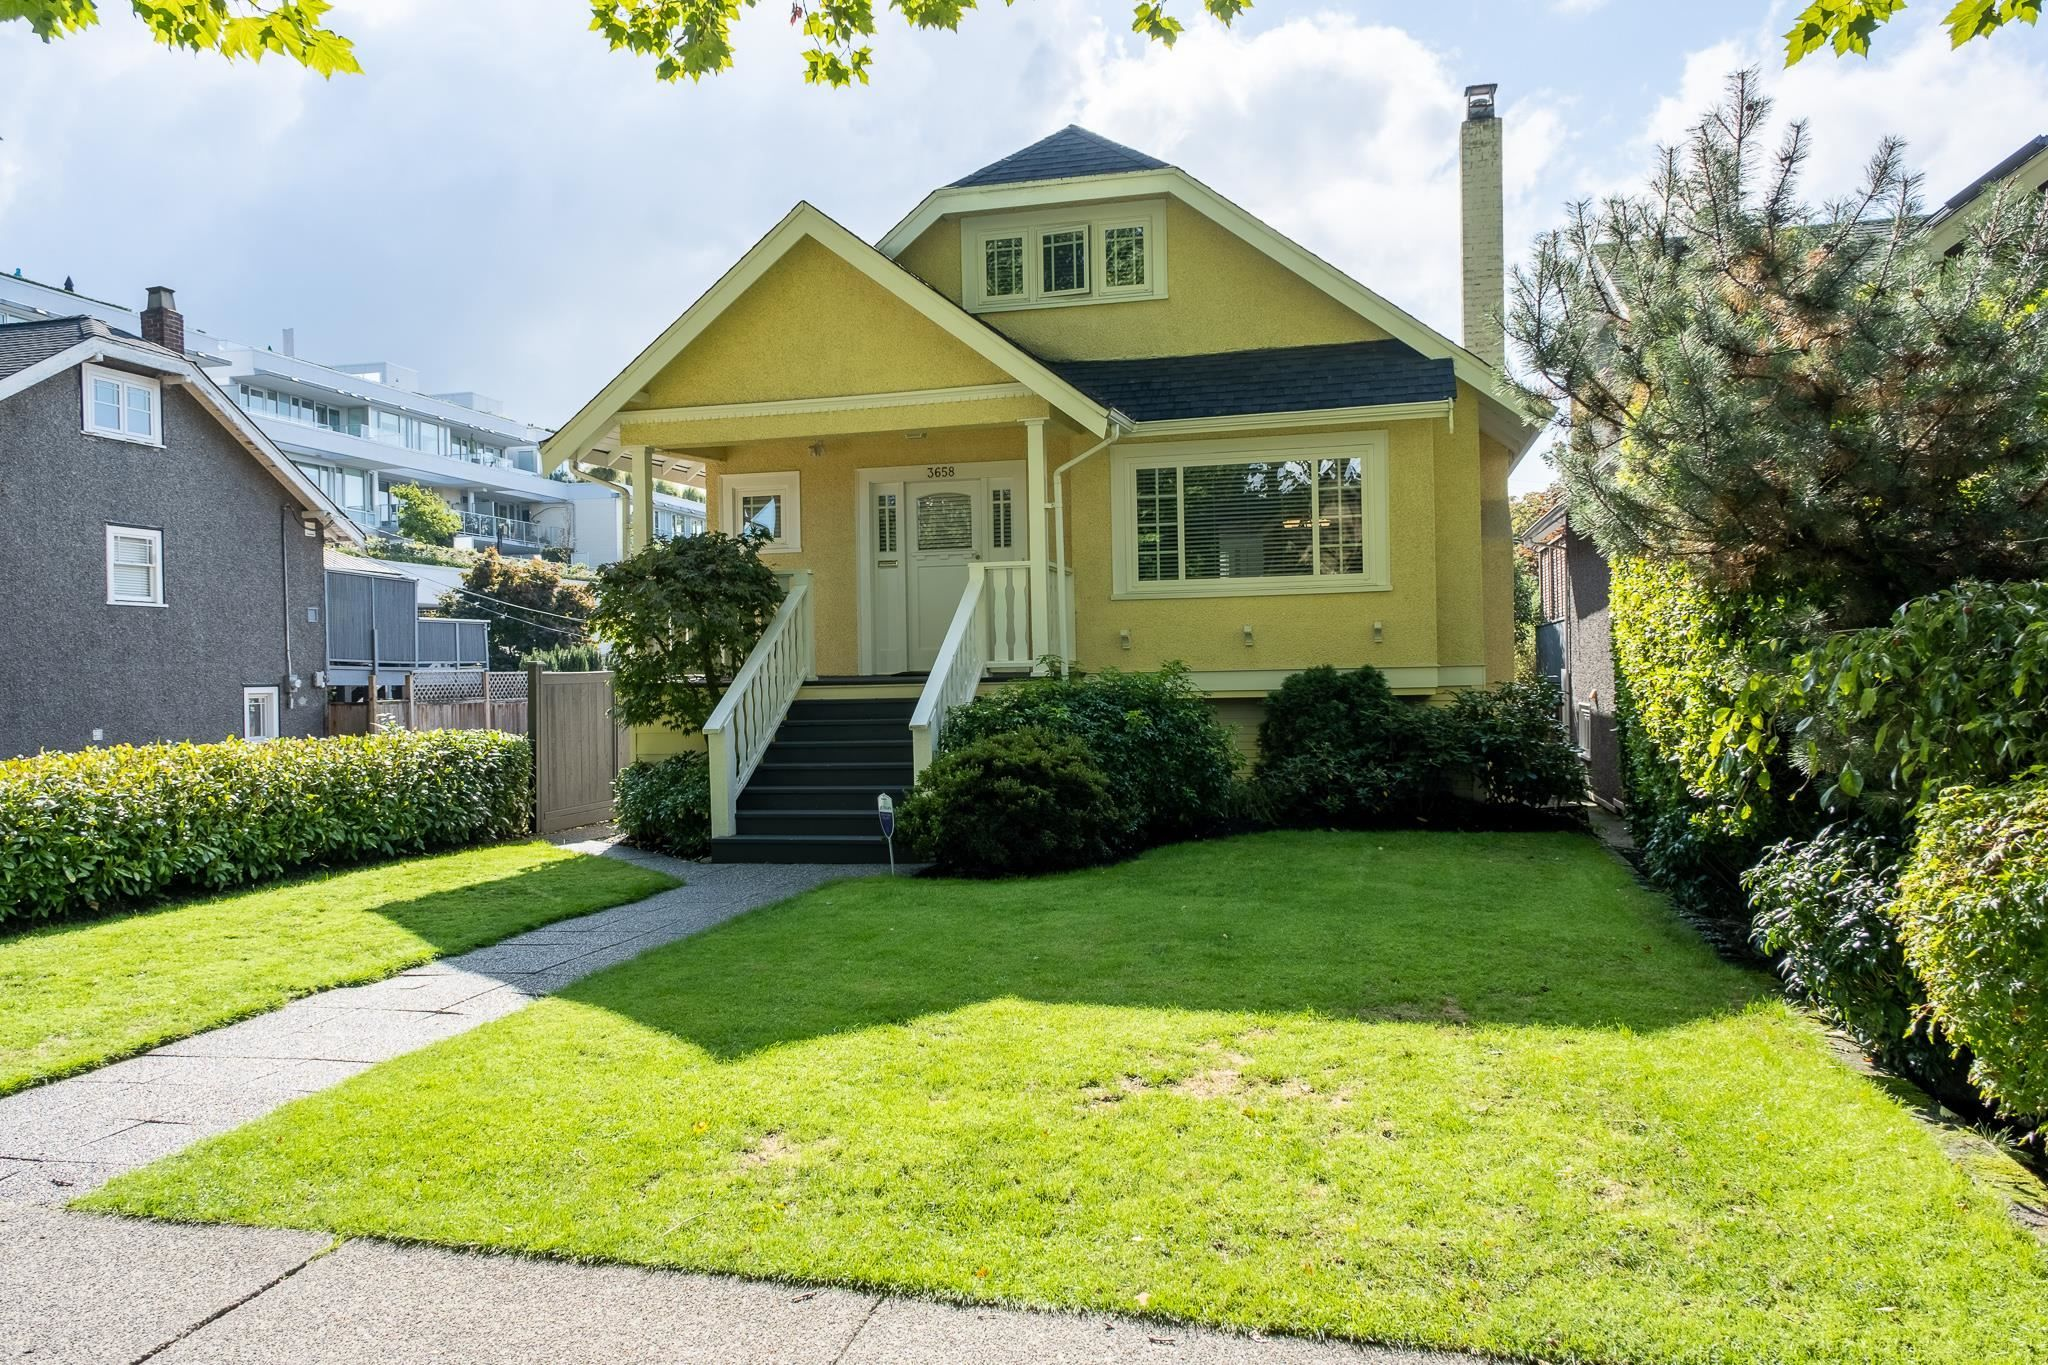 Main Photo: 3658 W 26TH Avenue in Vancouver: Dunbar House for sale (Vancouver West)  : MLS®# R2623135